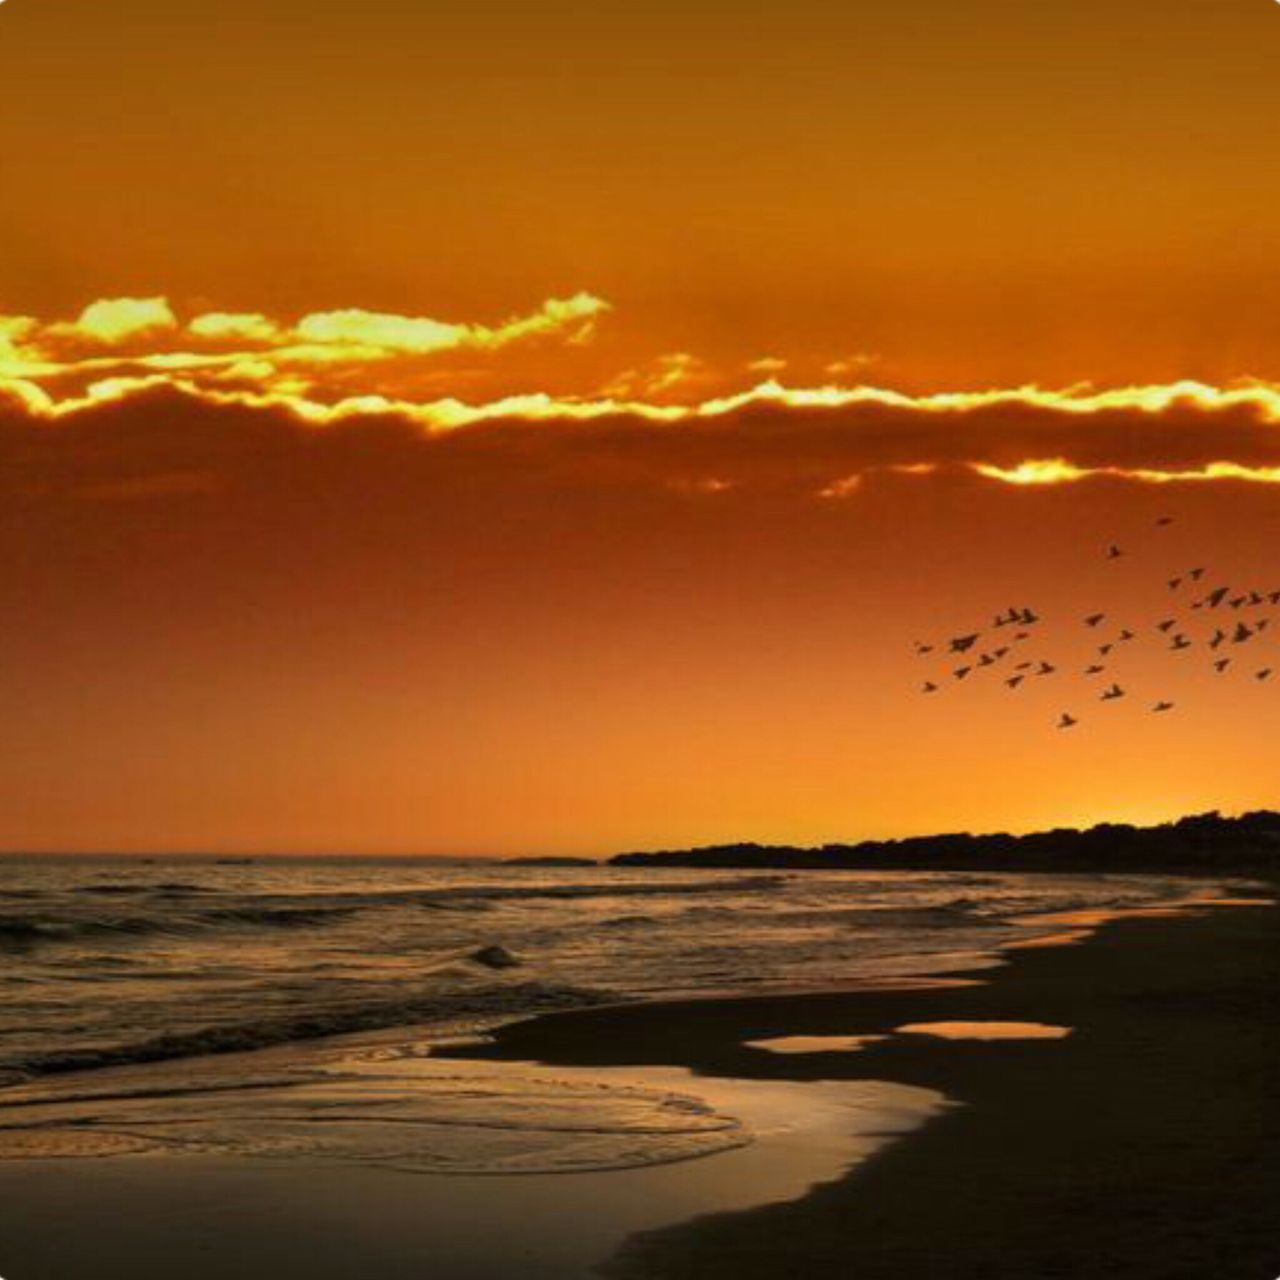 sunset, bird, animals in the wild, flying, flock of birds, large group of animals, animal wildlife, animal themes, sky, sea, silhouette, nature, outdoors, dusk, cloud - sky, beach, scenics, beauty in nature, no people, horizon over water, sand, day